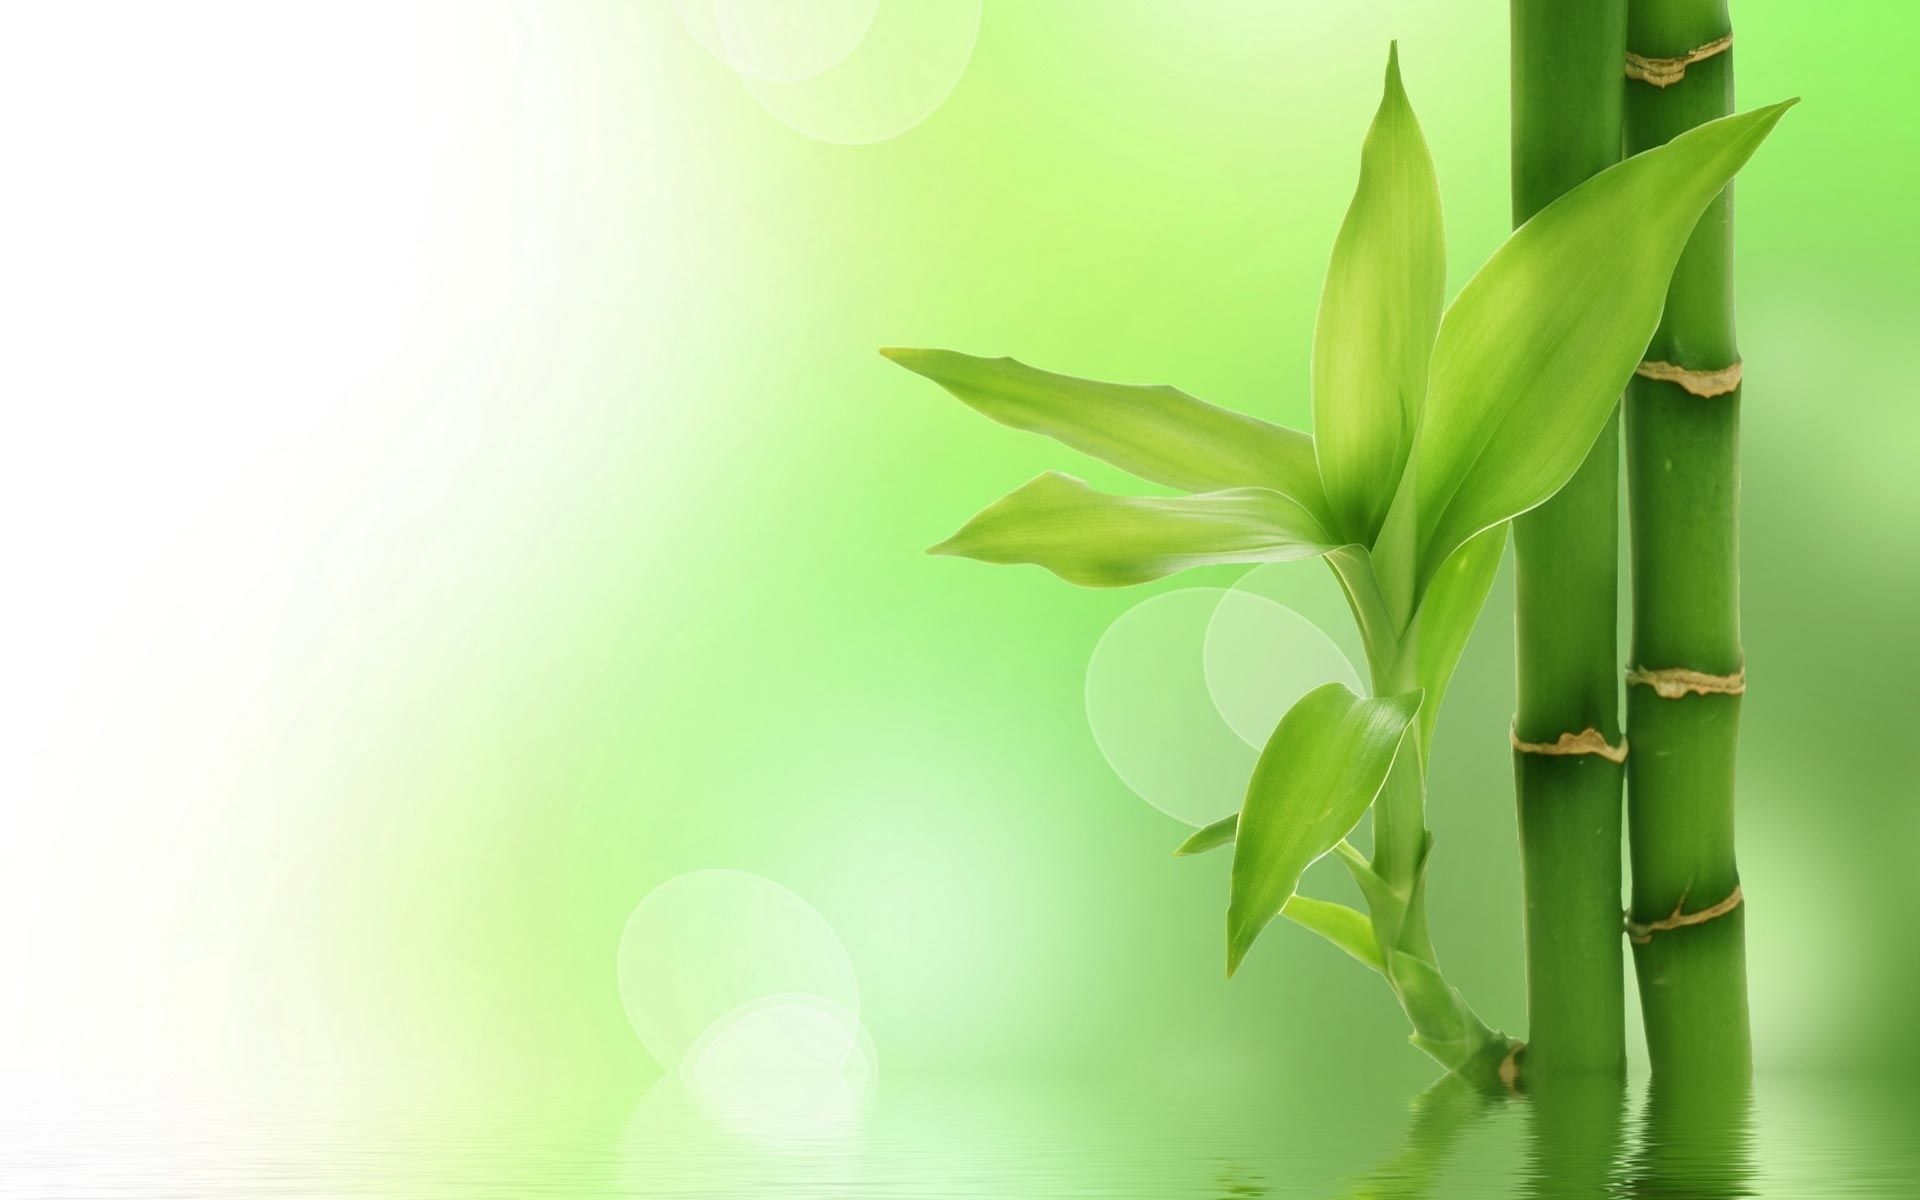 Free hd bamboo wallpapers ololoshka pinterest bamboo wallpaper